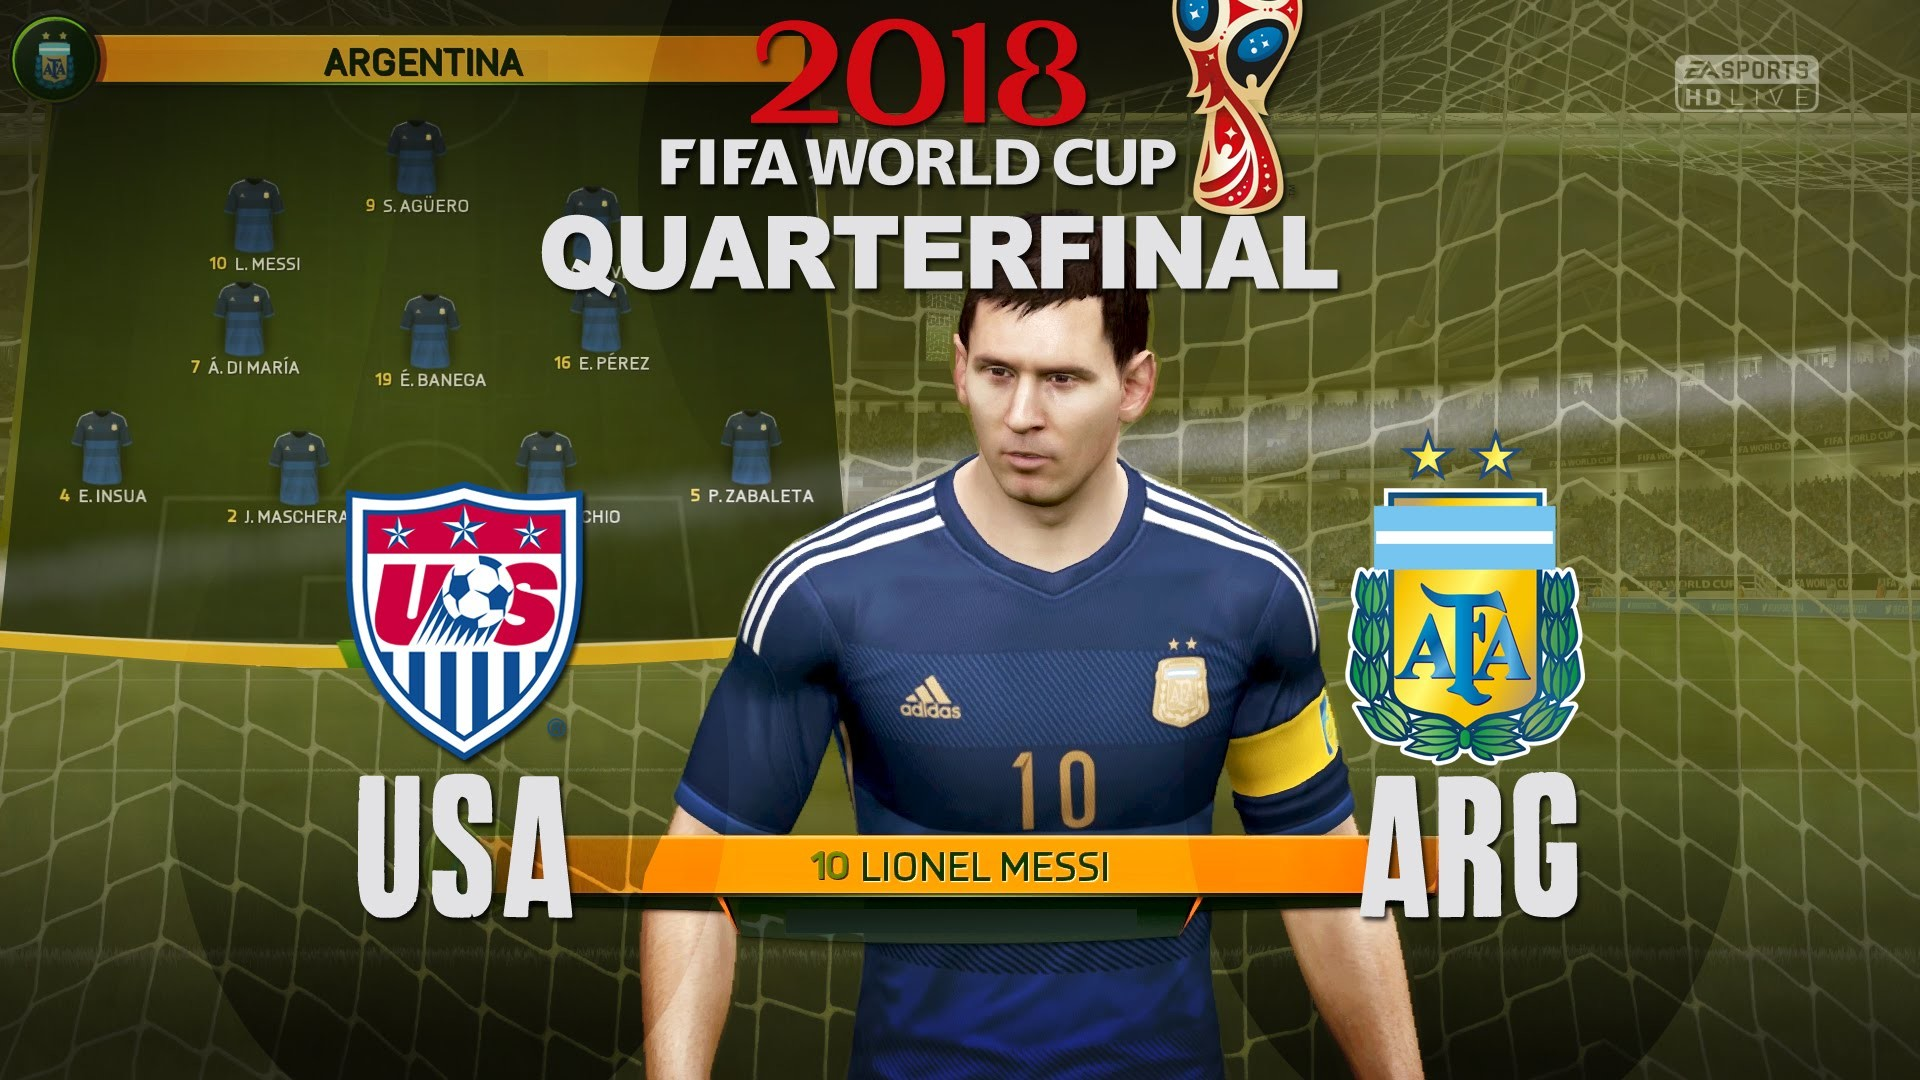 1920x1080 World Cup 2018 - USA vs Argentina - Quarterfinal Match #5 - FIFA Gameplay